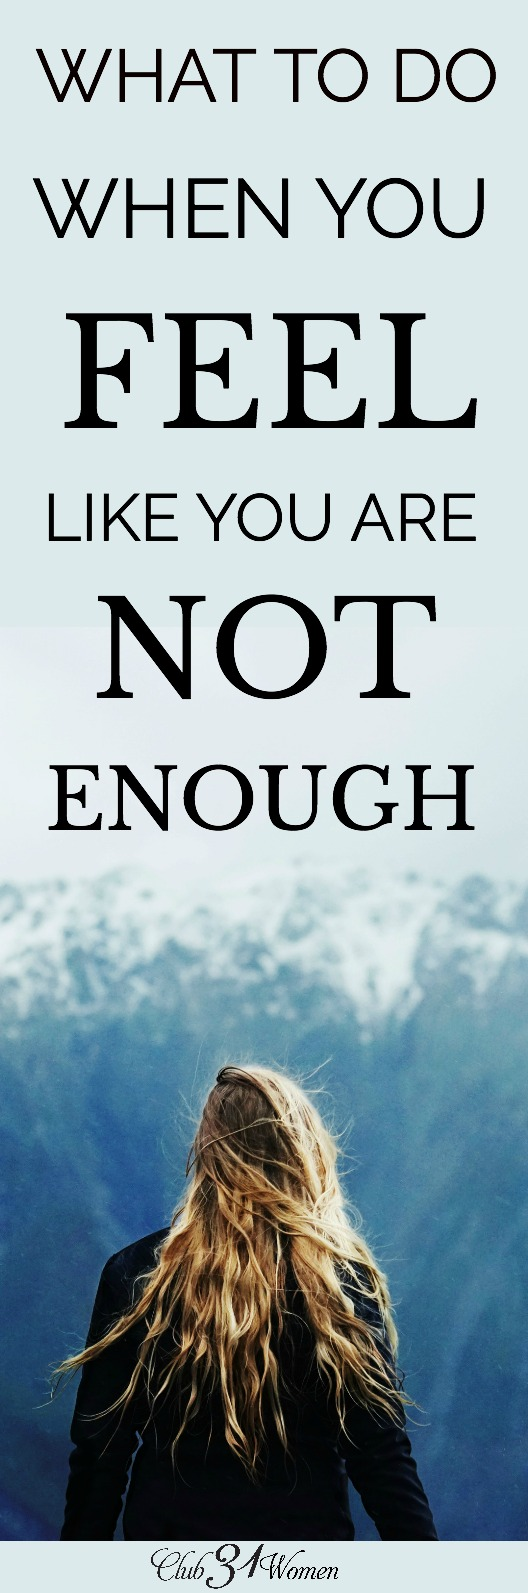 "Sometimes when we feel like we are not enough, it can me we have taken on more than we can rightly handle. We need to be brave enough to say ""no"" more. via @Club31Women"